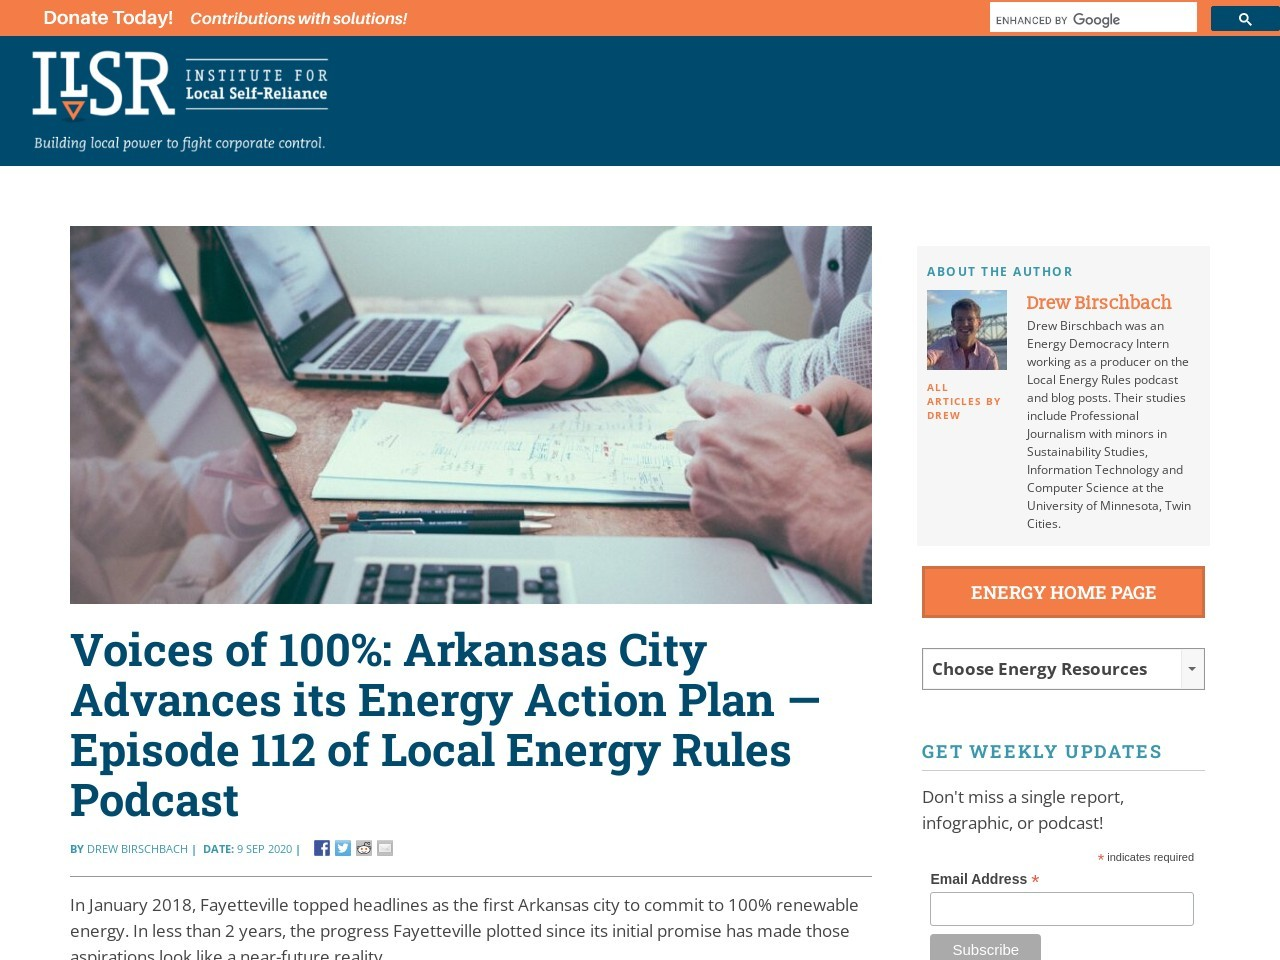 Voices of 100%: Arkansas City Advances its Energy Action Plan — Episode 112 of Local Energy Rules Podcast